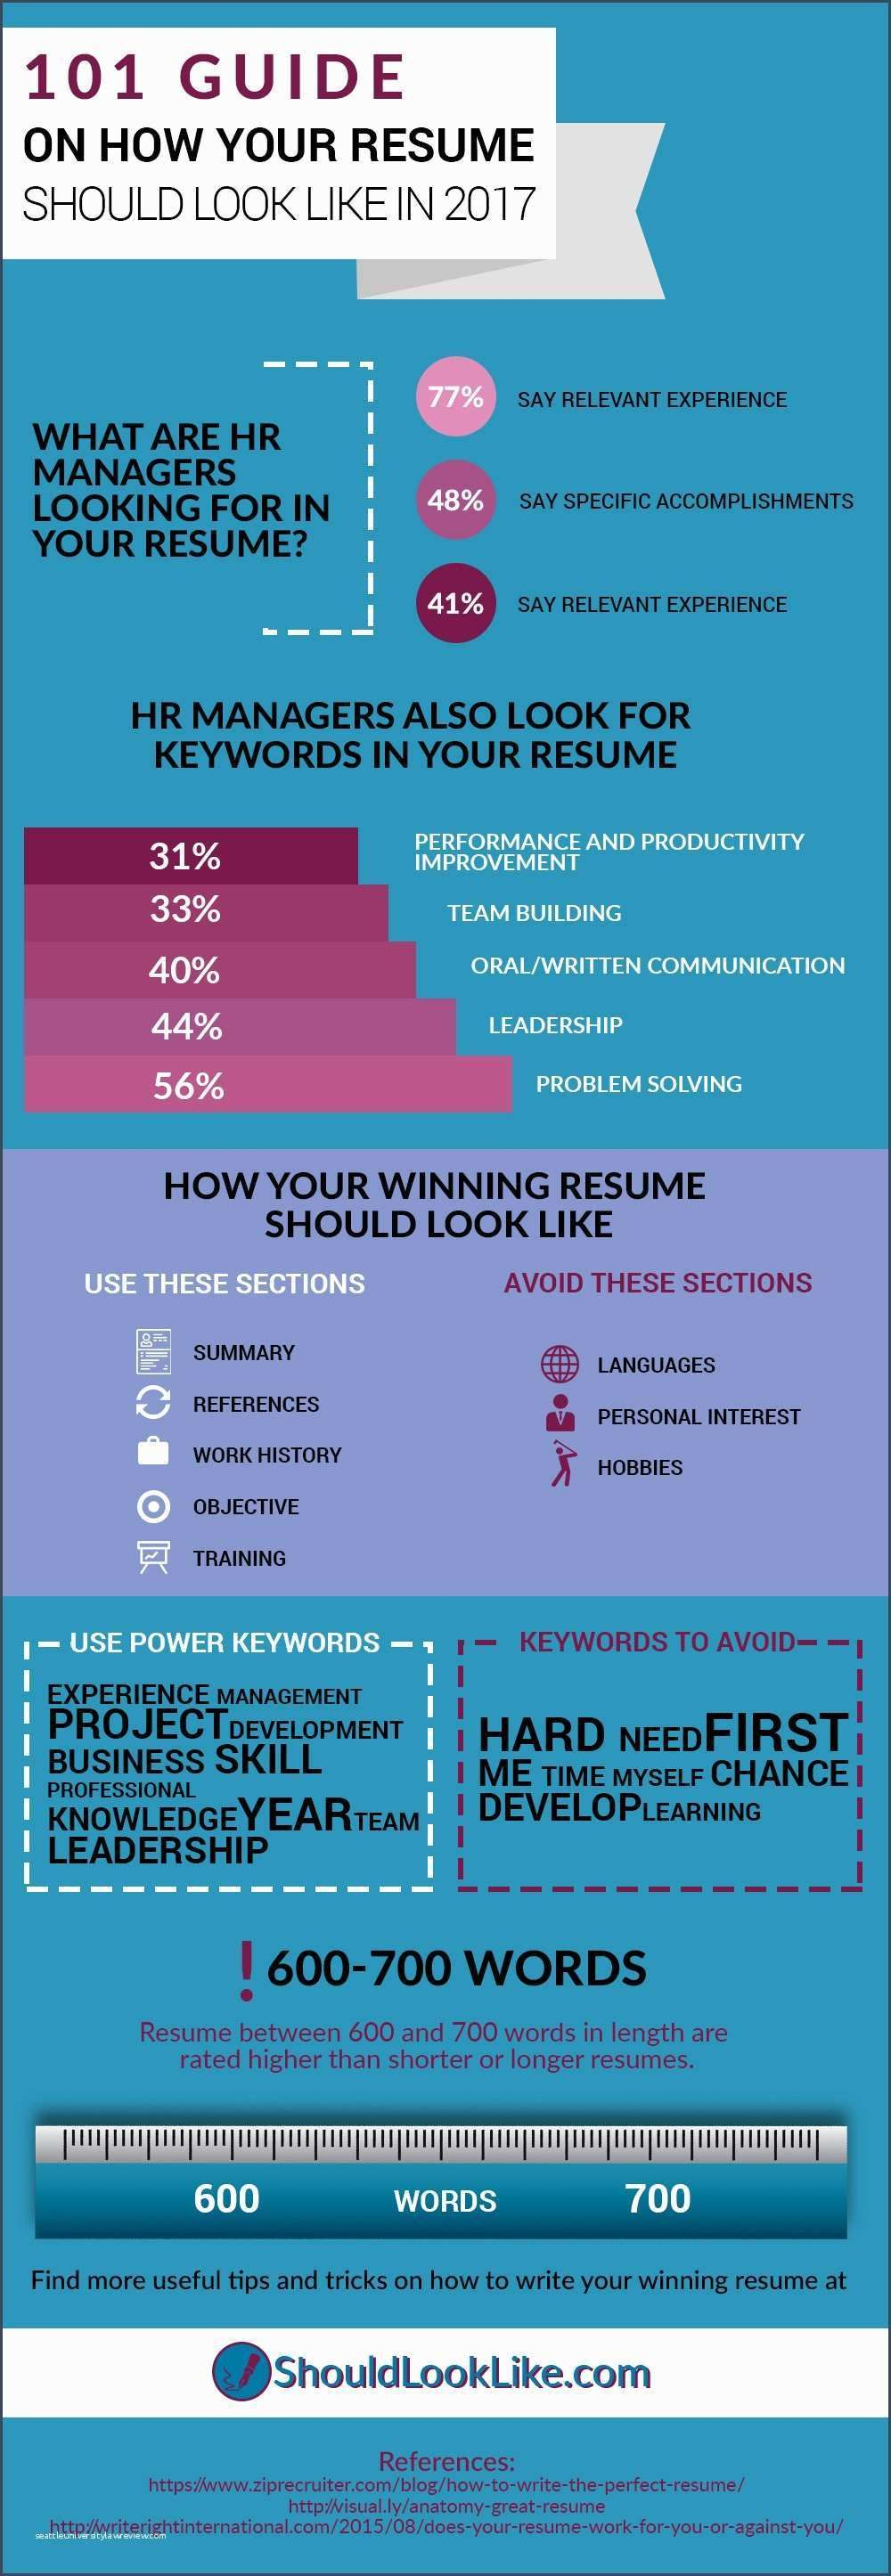 Best101 guide on how your resume should look like in 2017